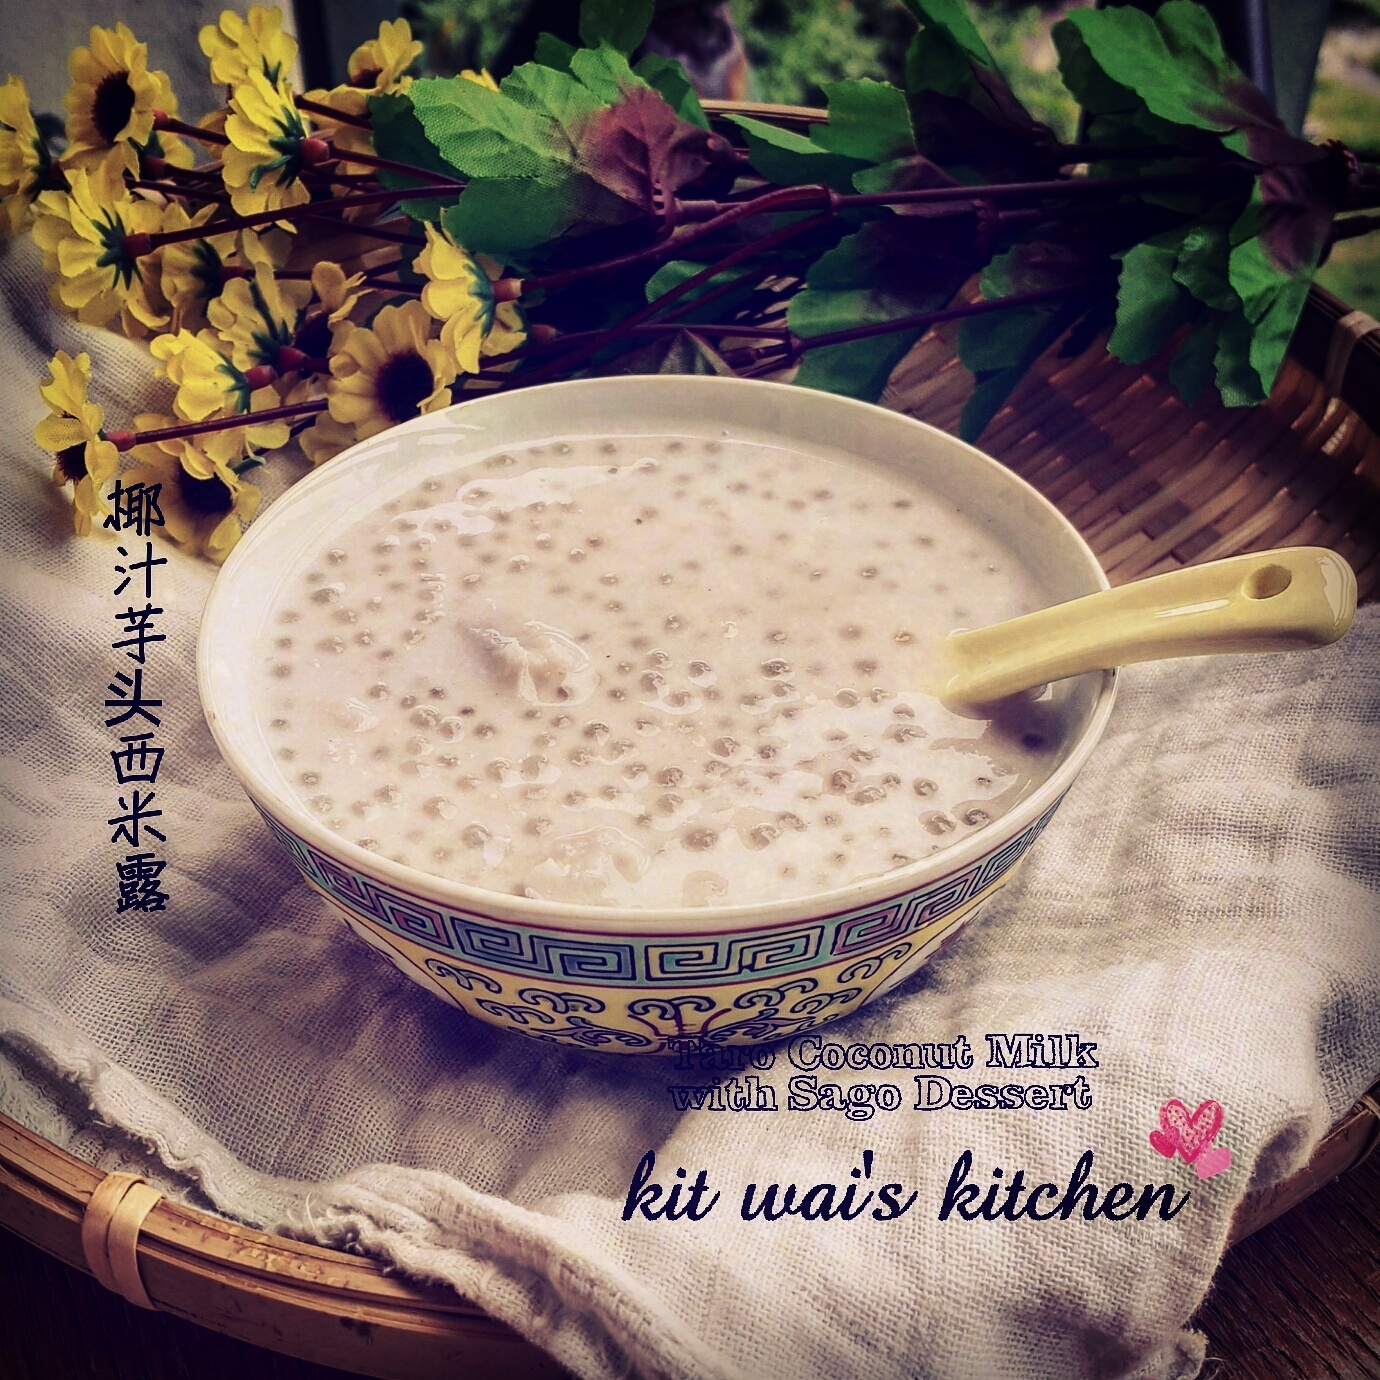 椰汁芋头西米露 ~ Taro Coconut Milk with Sago Dessert